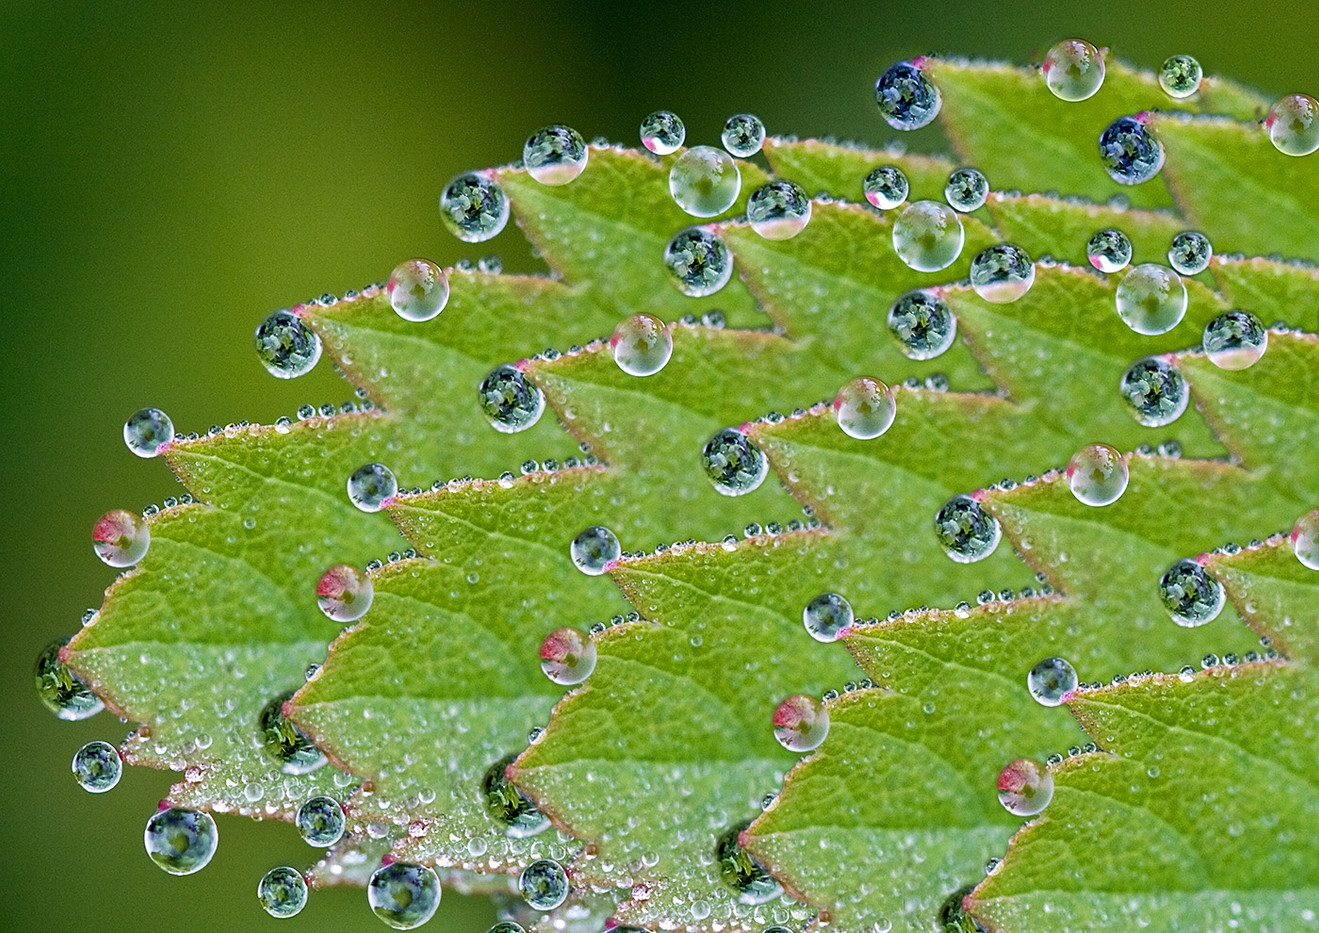 14 NATURE'S BAUBLES by Peter Tulloch